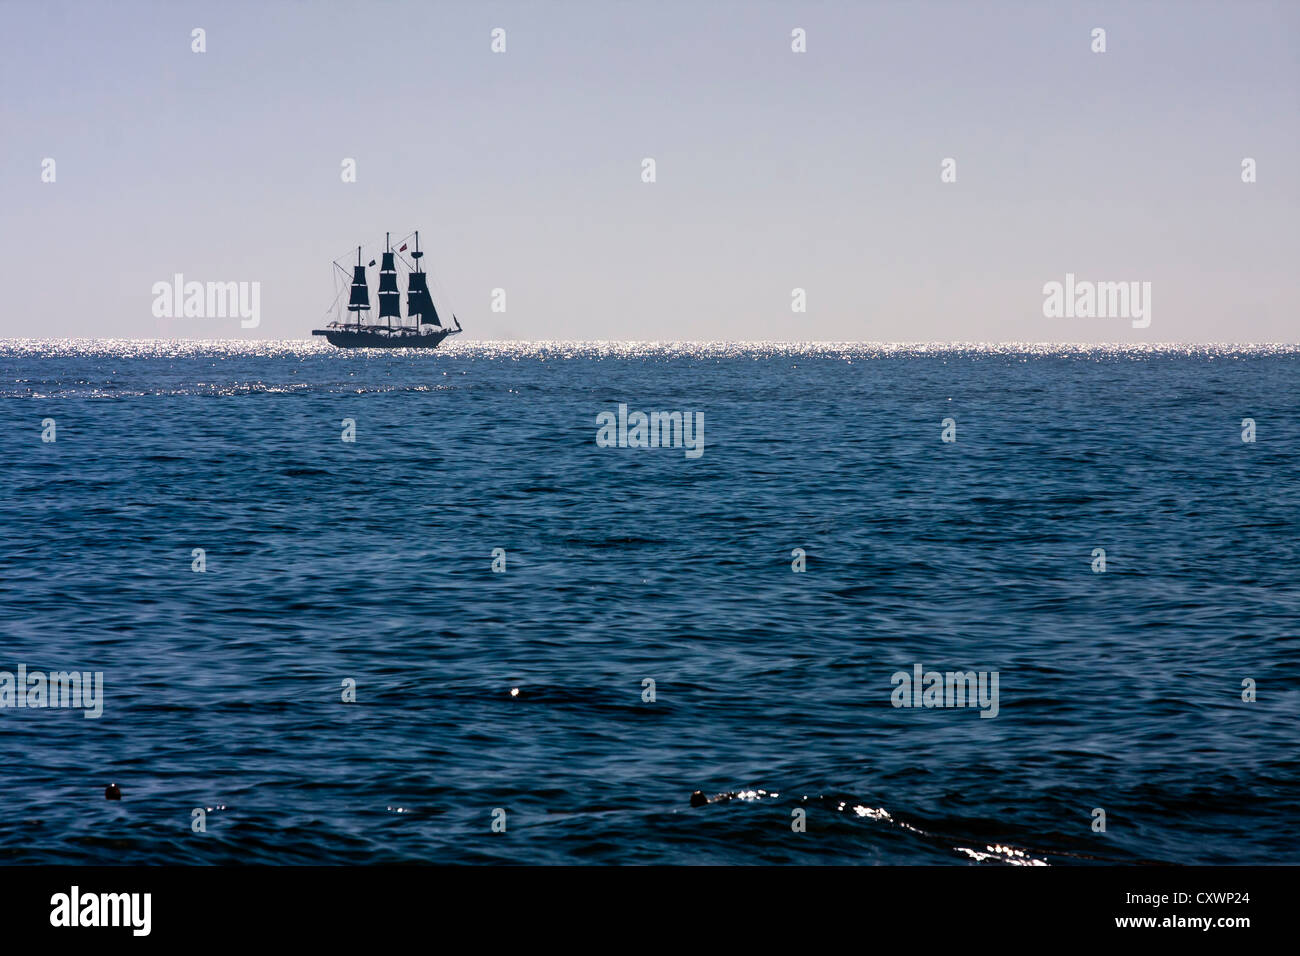 Sailing ship on the ocean. - Stock Image